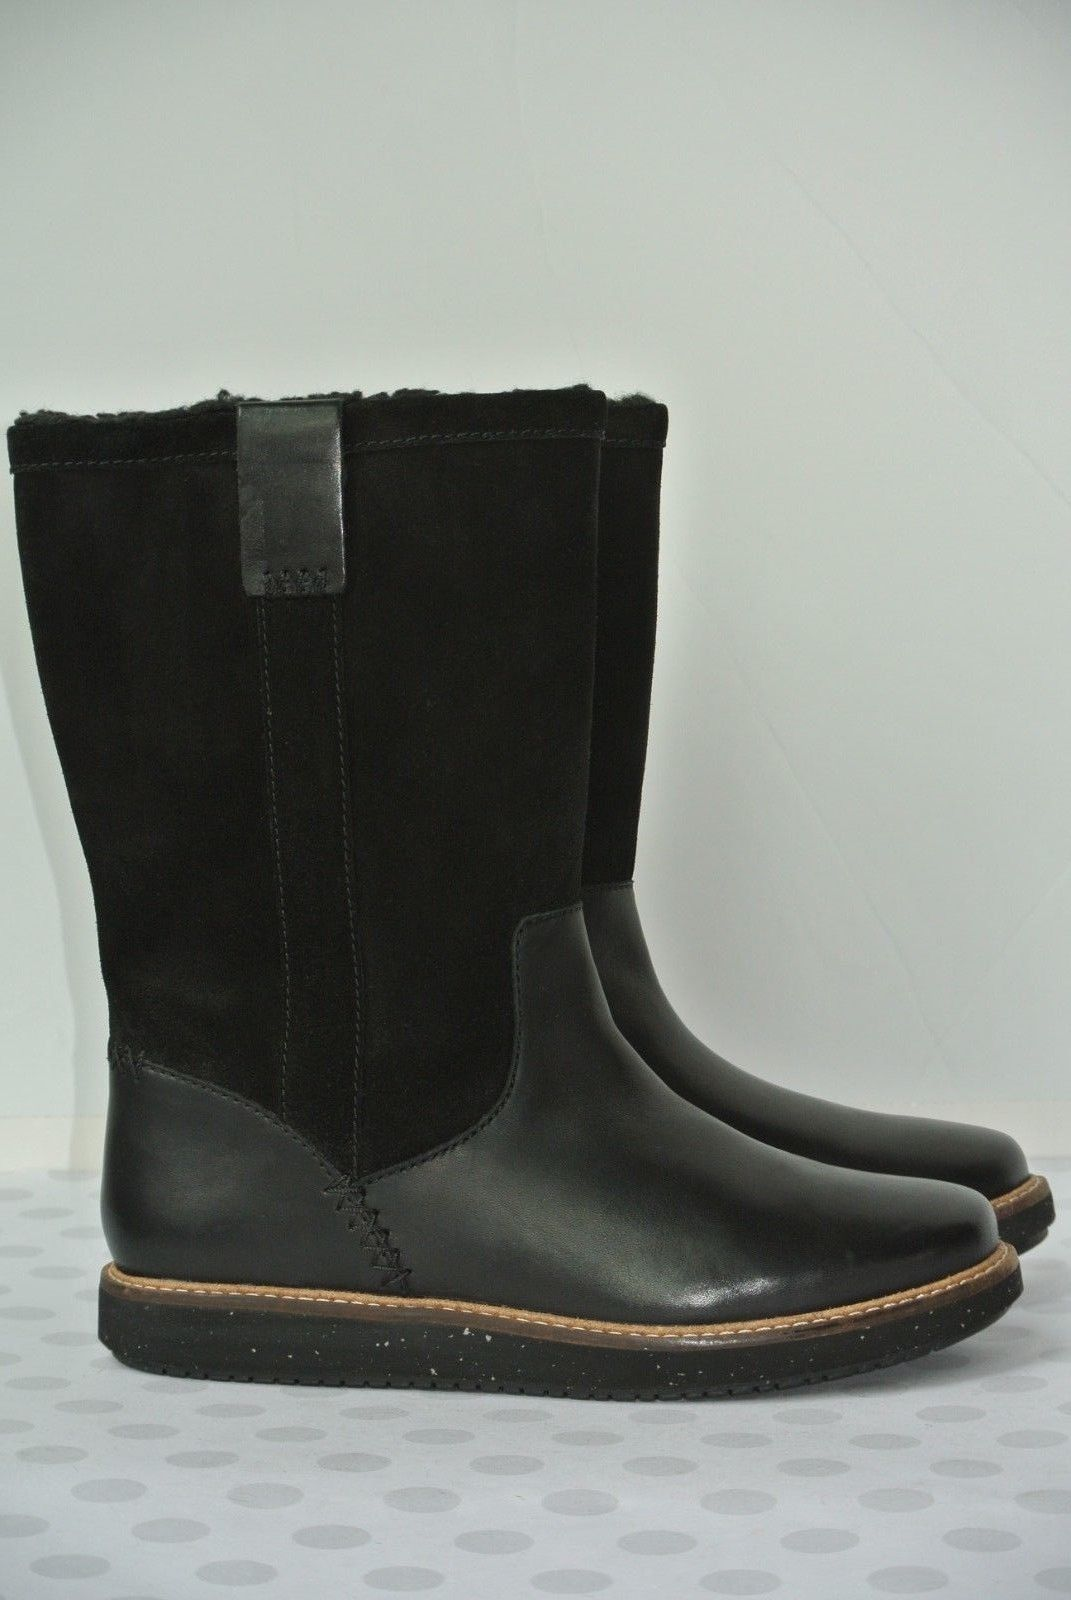 NEW Clarks Glick Elmfield Womens Sz 6.5 M Black Leather Mid Calf Boots $180